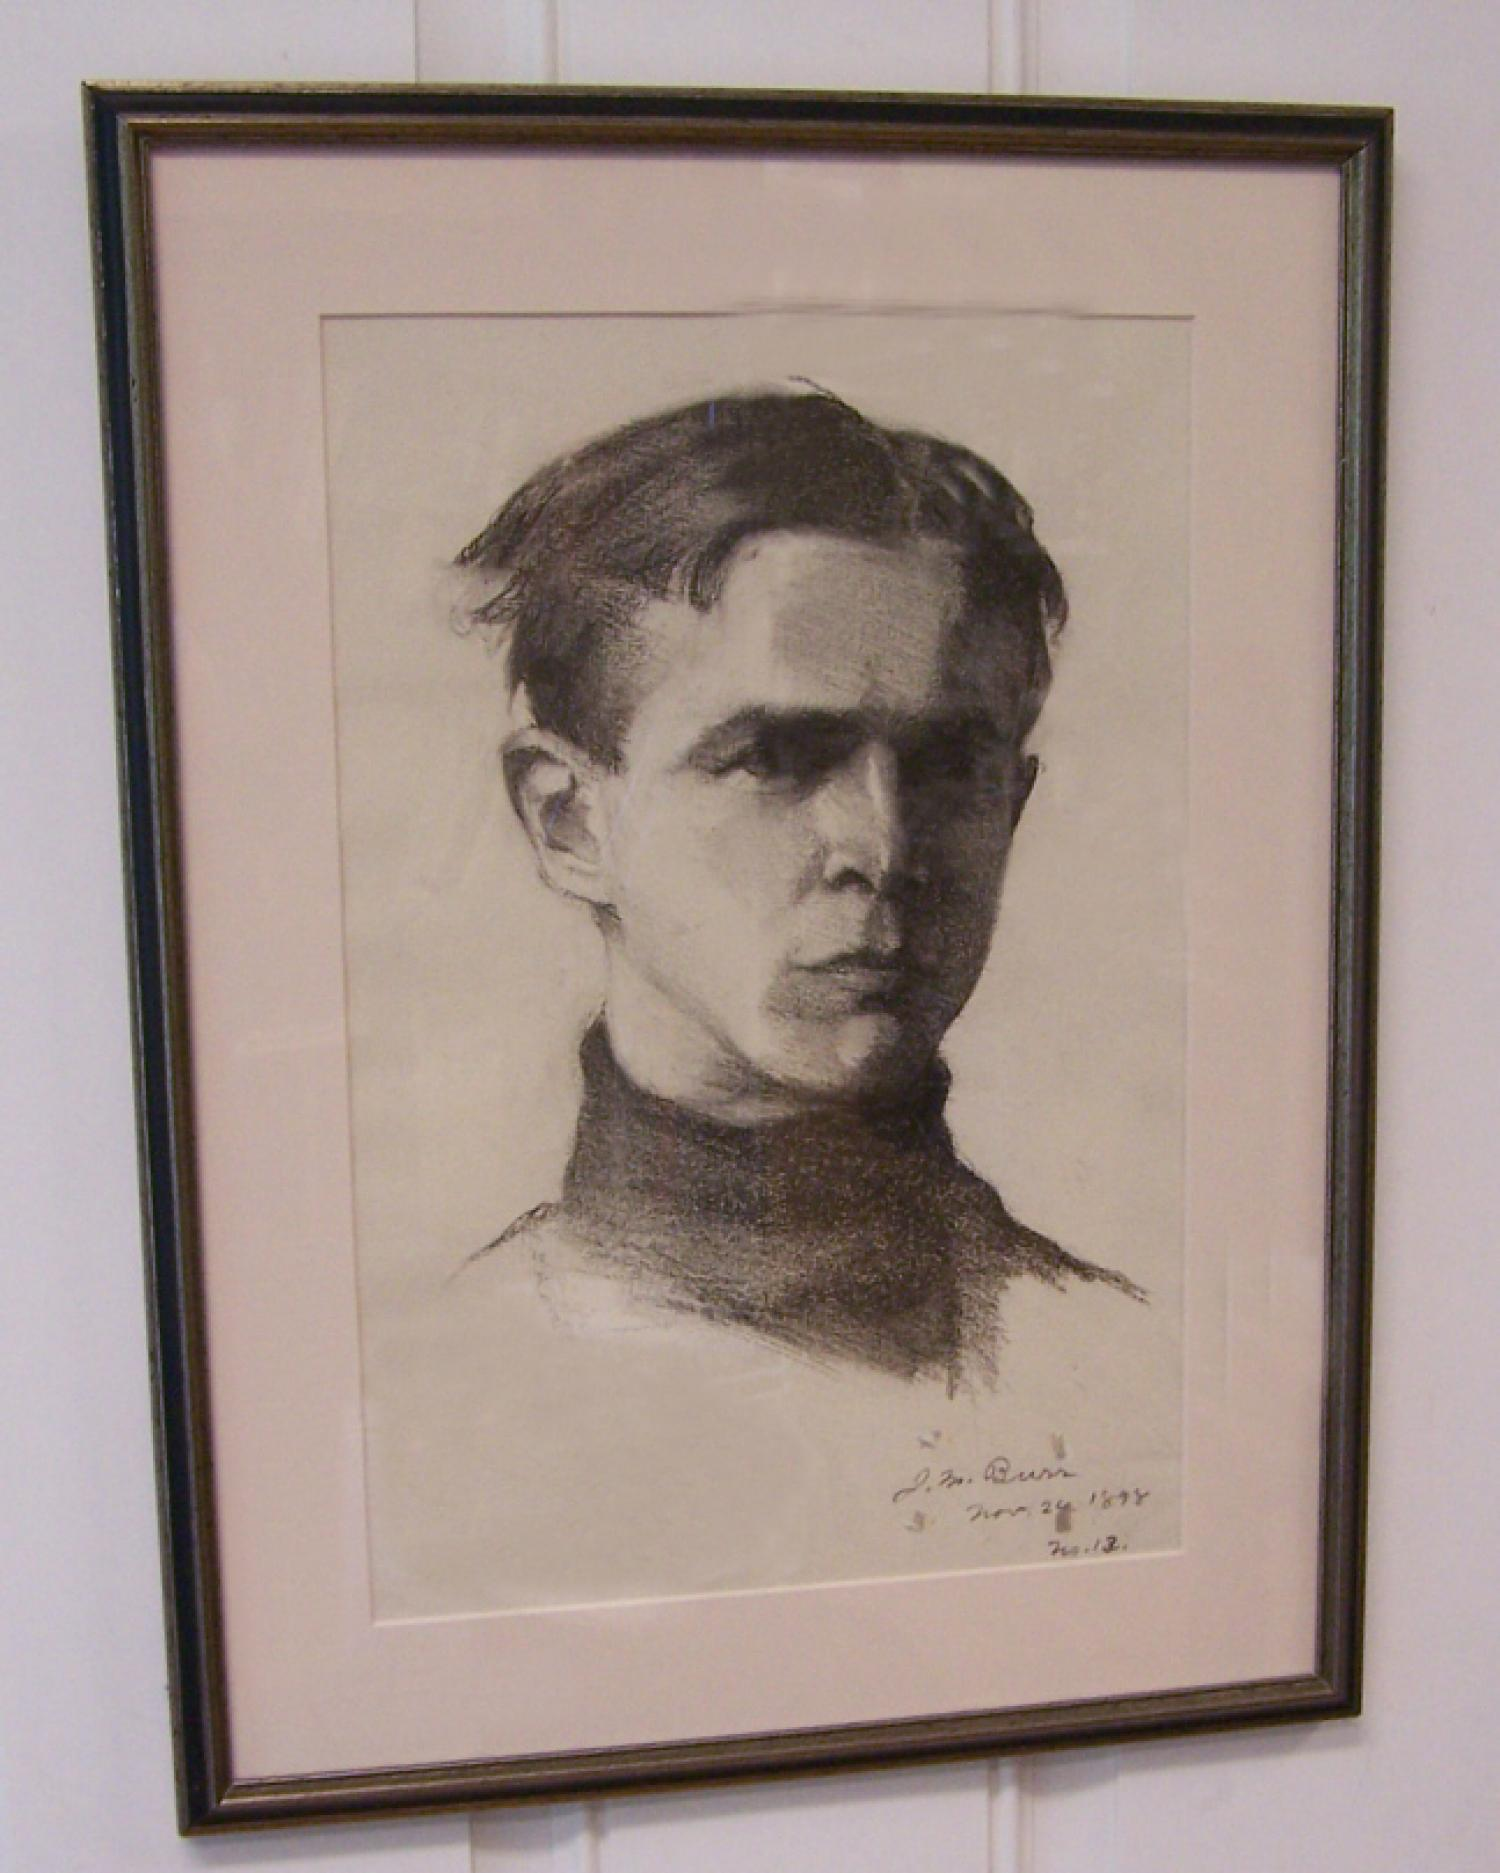 Jennie Burr 1898 charcoal portrait of a young man